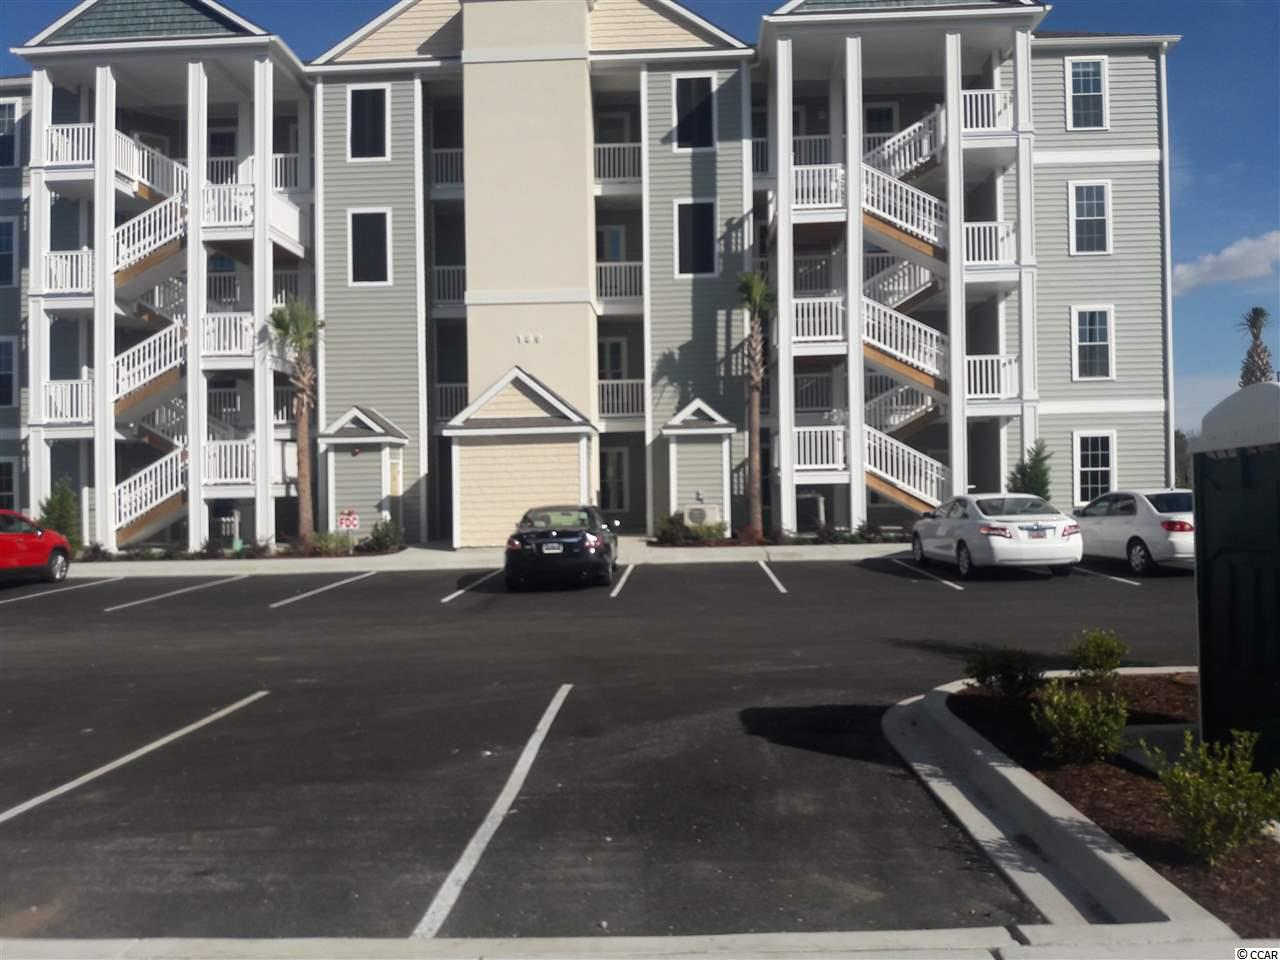 Located in one of the most successful condo developments in the Myrtle Beach area, this third floor end unit is a 3 bedroom 2 bathroom beautiful condo in the very popular Queens Harbour! Building has an oversized ELEVATOR to all floors, outside storage, split bedroom floor plans with entry to the Master Suite from the Family Room, 9' smooth ceilings and a screen porch. The location is superb with shopping, dining and recreation steps away. The amenity package includes a resort style swimming pool with club house and conveniently located picnic areas with grills.